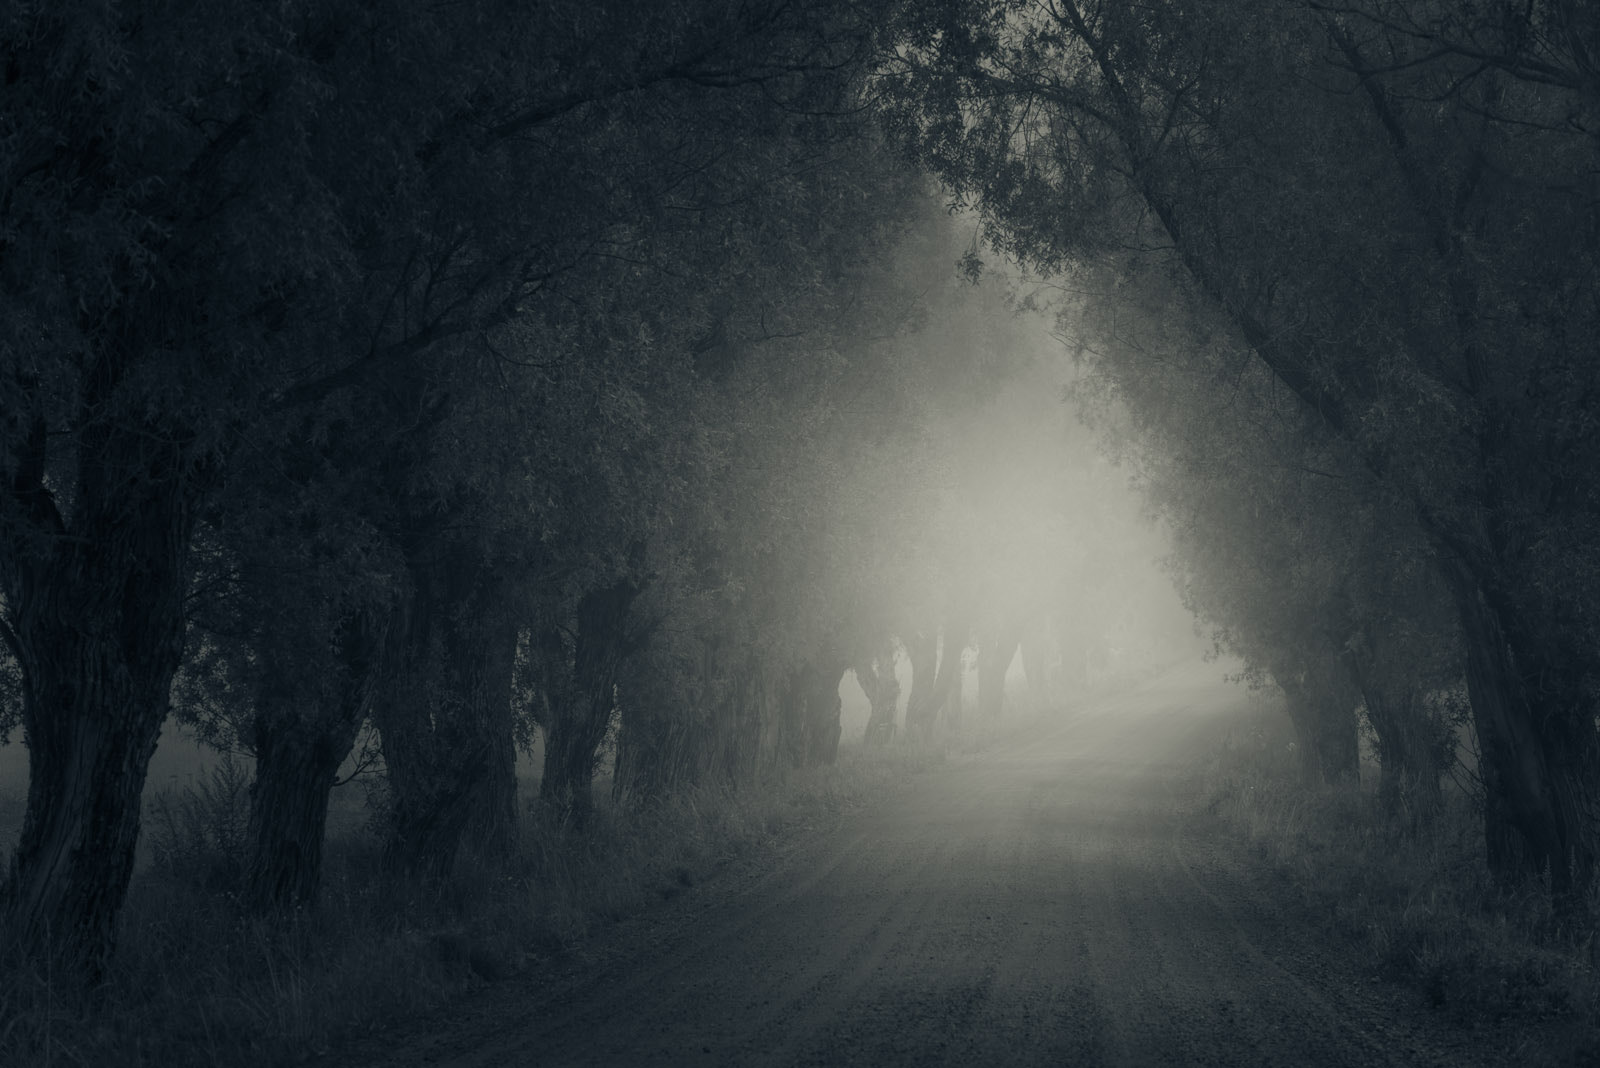 Photograph Path II by Mikko Lagerstedt on 500px